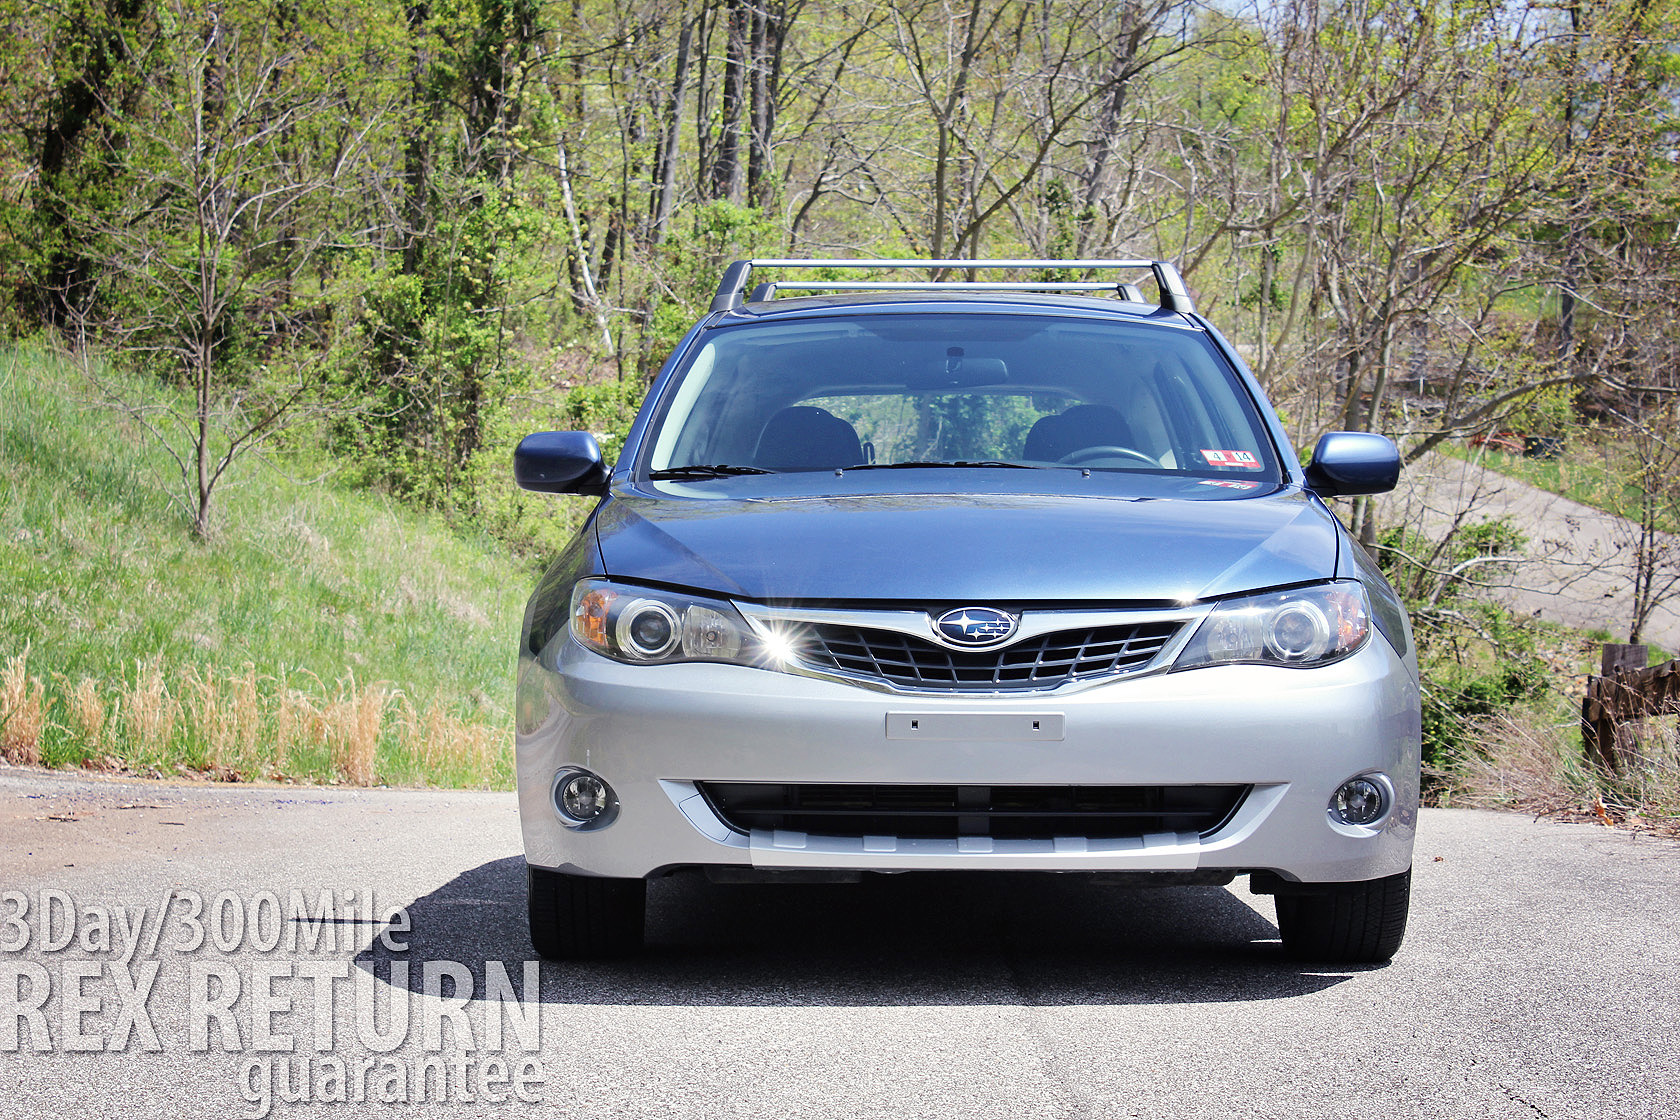 2011 subaru impreza outback sport 22 353 miles carwrex. Black Bedroom Furniture Sets. Home Design Ideas